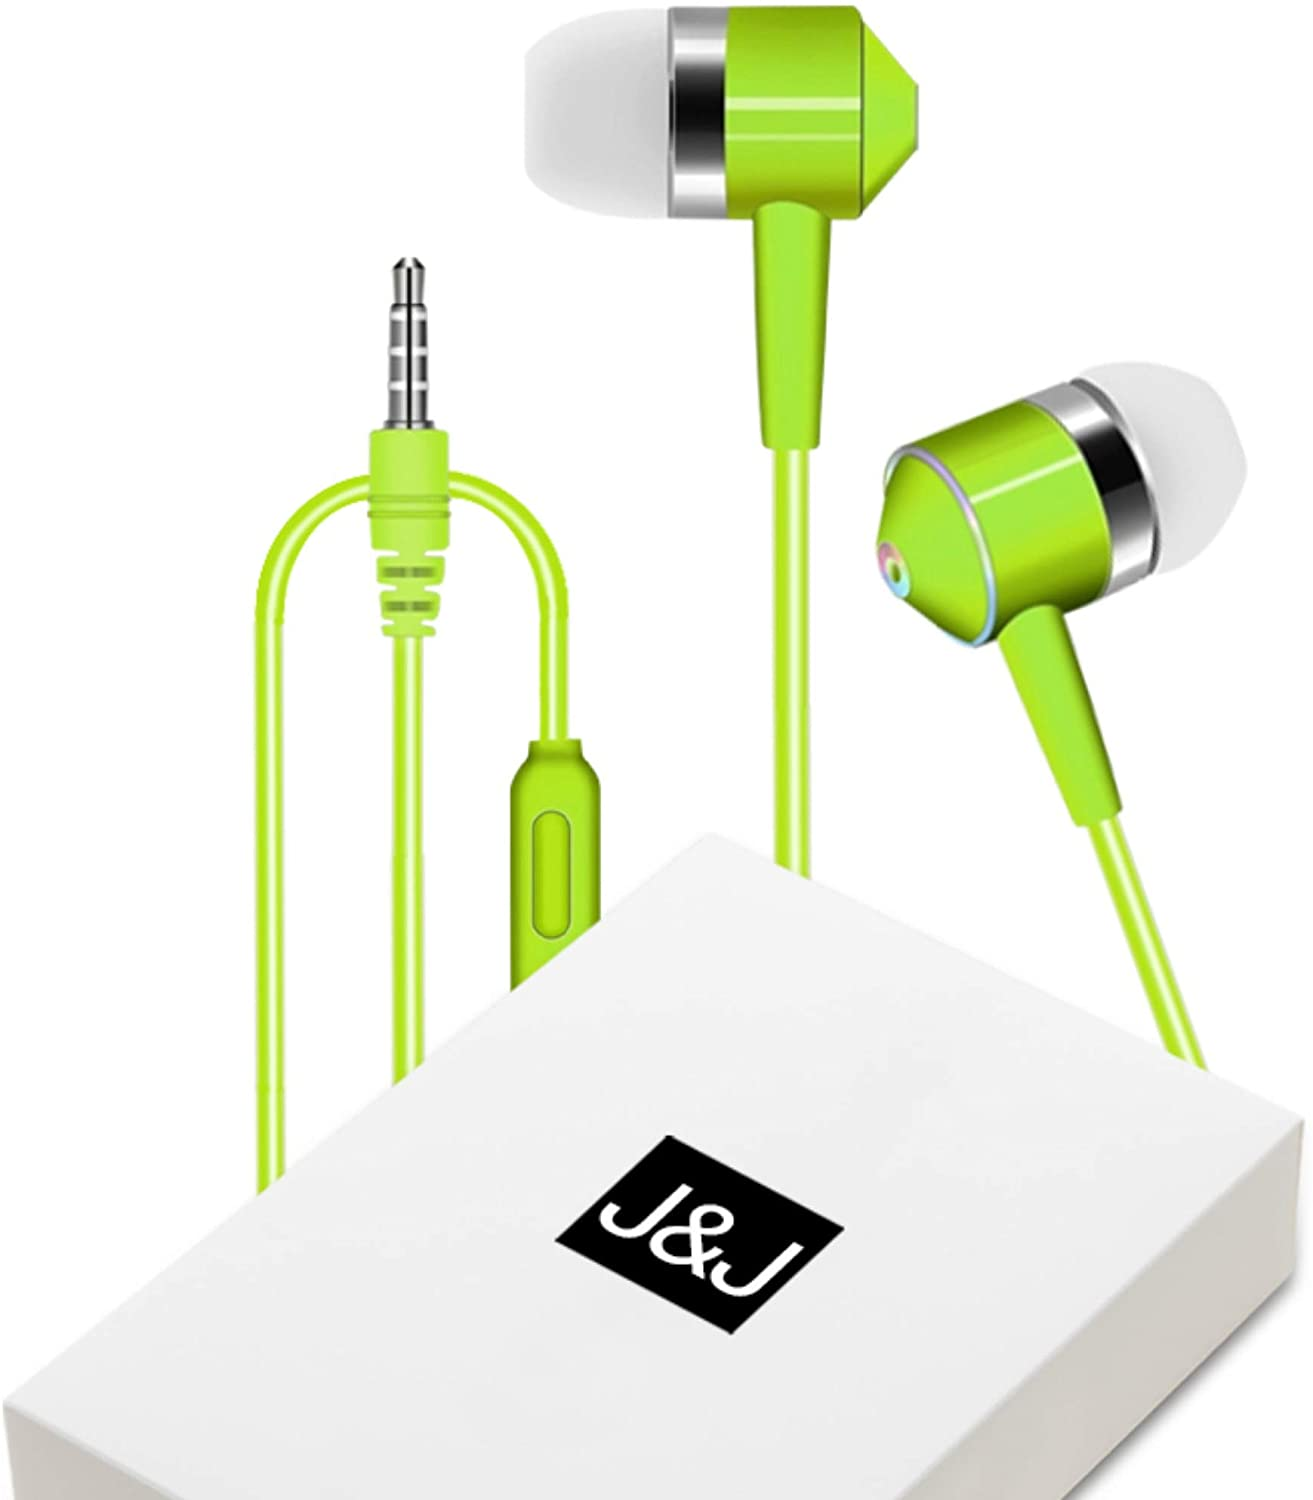 All-New TPE Earbuds Earphones Headphones in-Ear/Mic, Noise Isolating, Fits All 3.5mm Devices, HD Stereo Sound for Samsung, iPhone,iPad, iPod, Android Phones, Mp3 Players w/Bonuses - SupFabPal (Green)